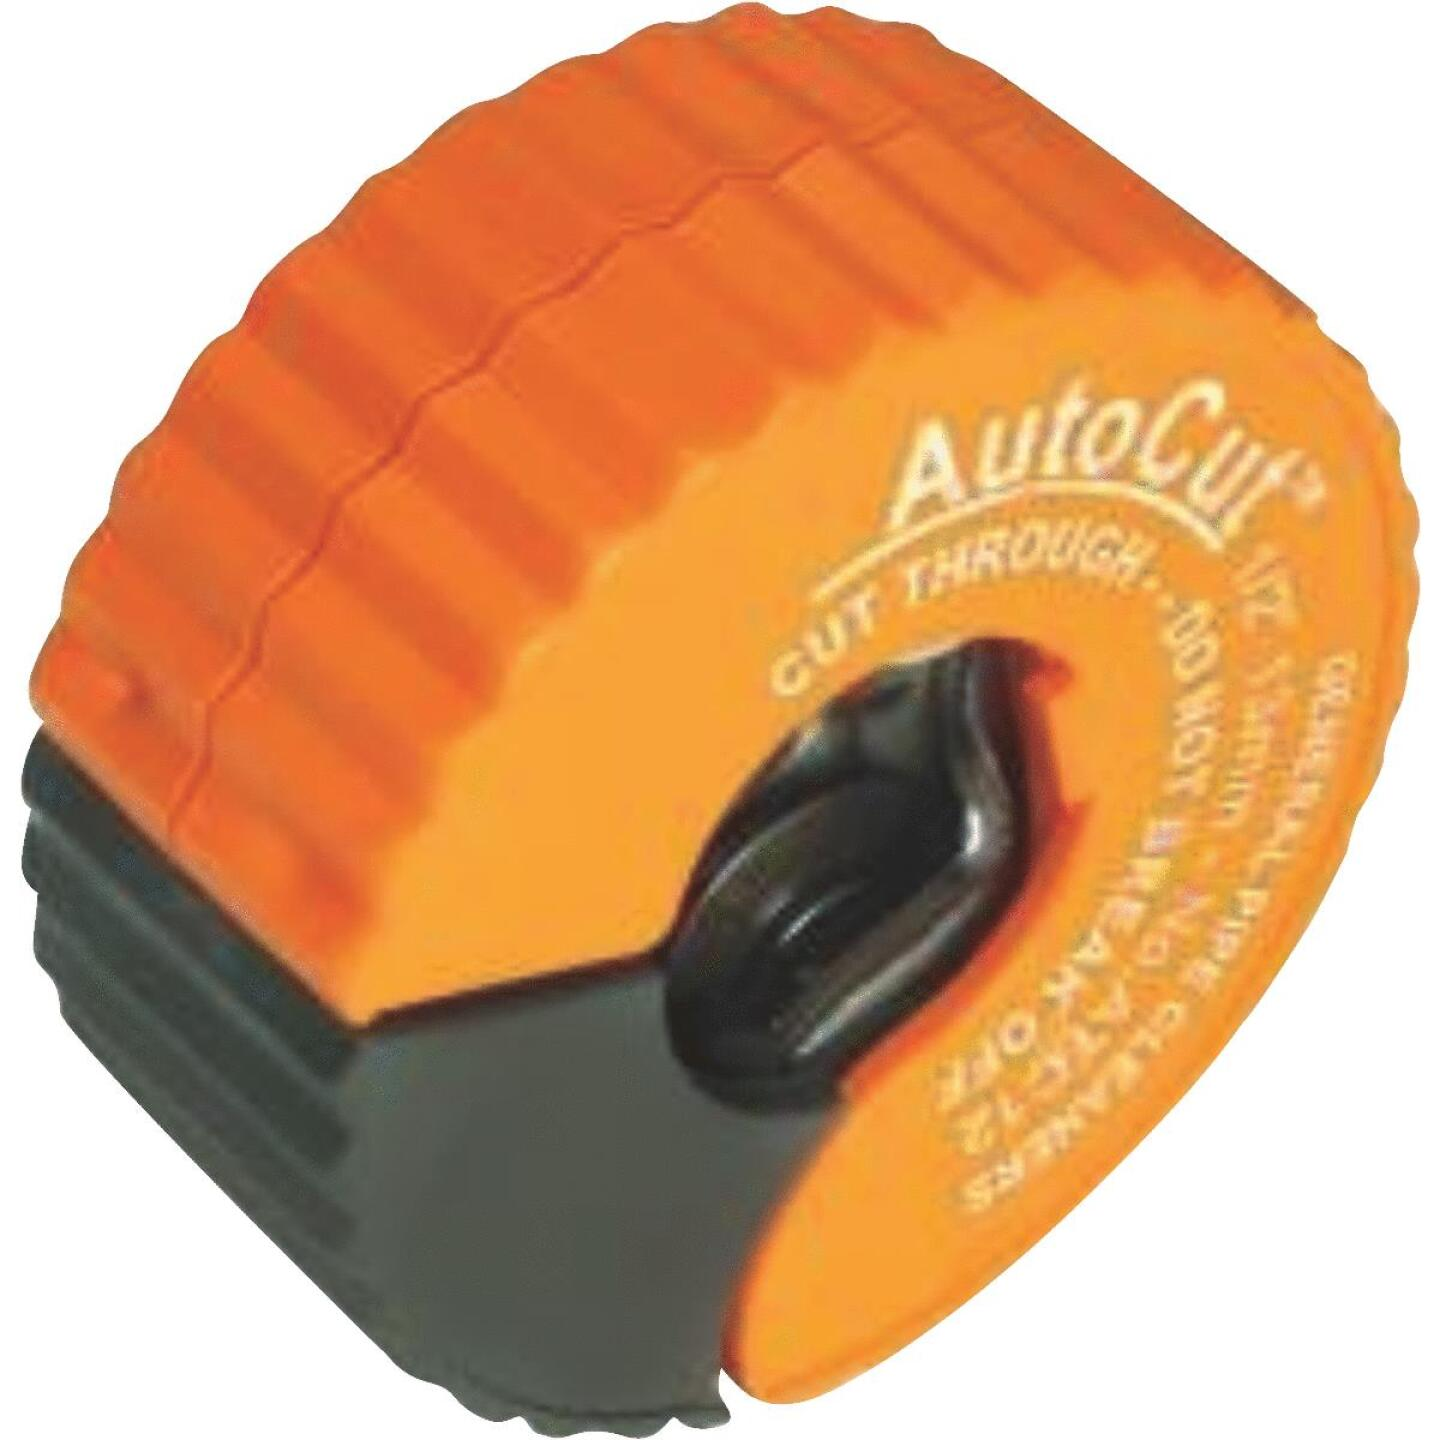 General Wire 1/2 In. AutoCut Copper Tubing Cutter Image 1